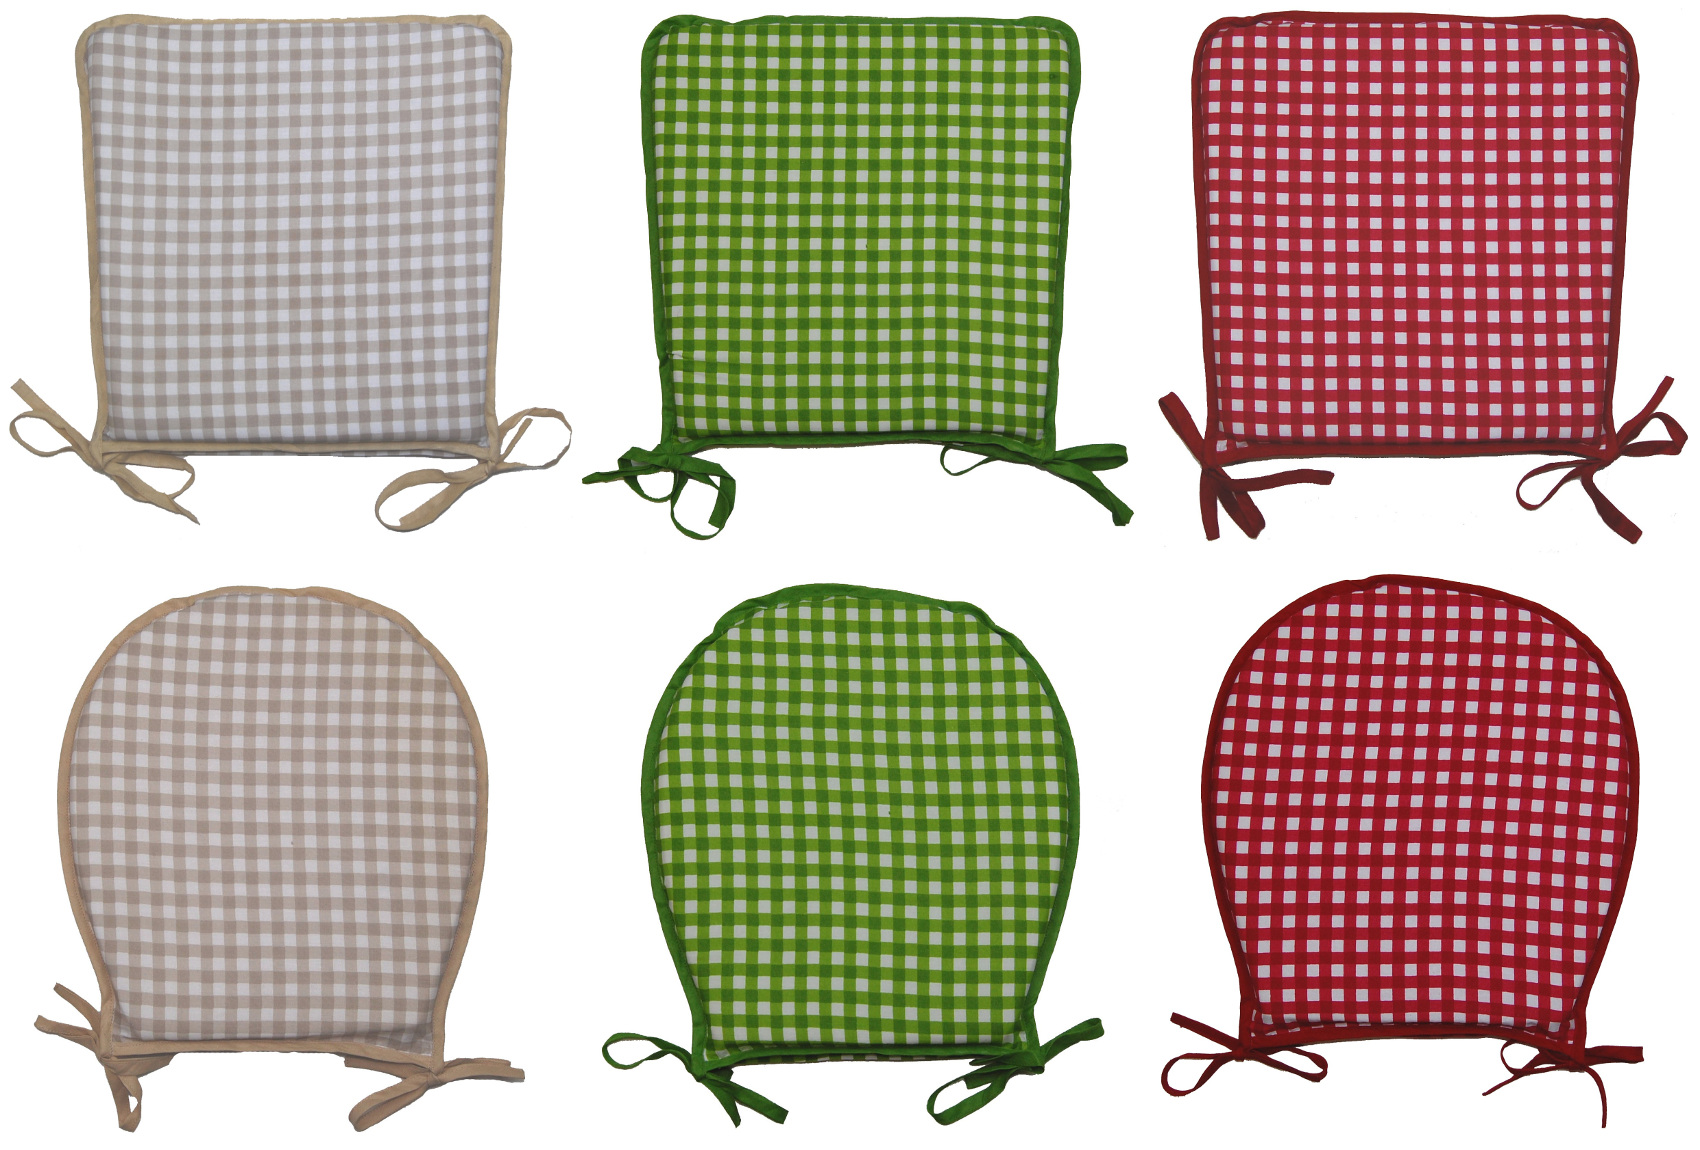 gingham dining room chair covers red ebay garden seat pad 100 cotton check kitchen